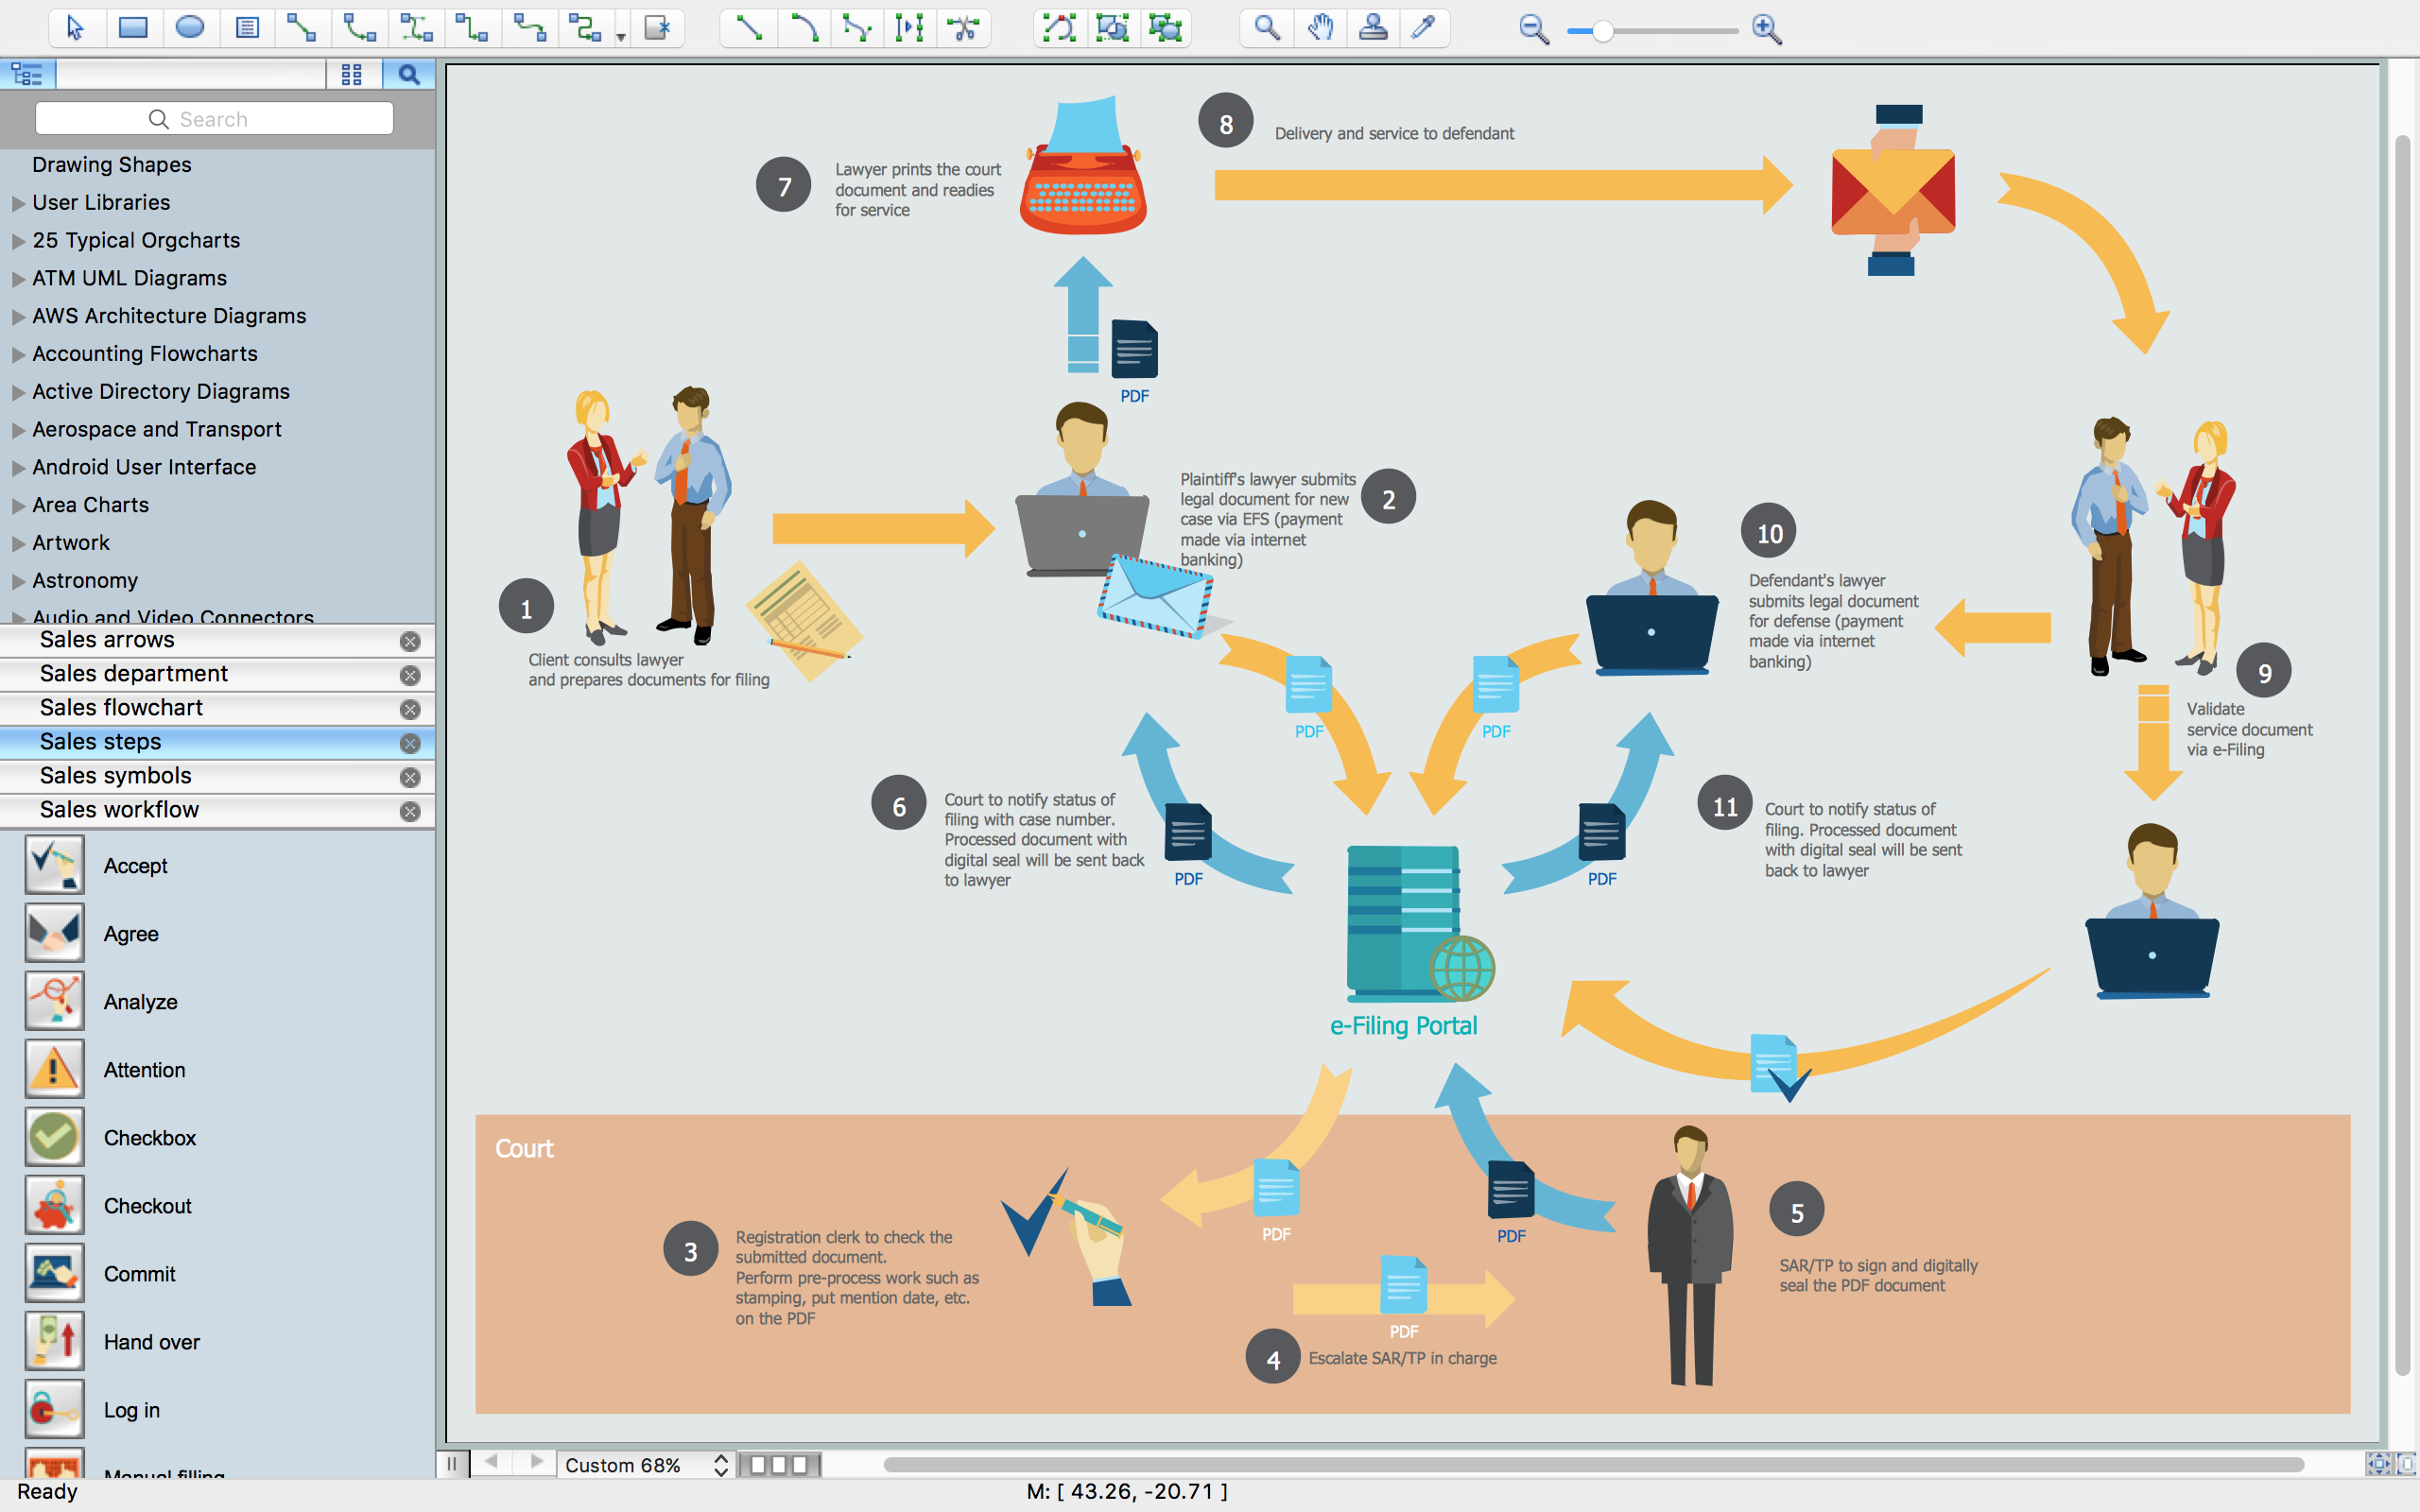 Sales flowchart symbols color coded flowchart symbols sales process flowchart geenschuldenfo Images